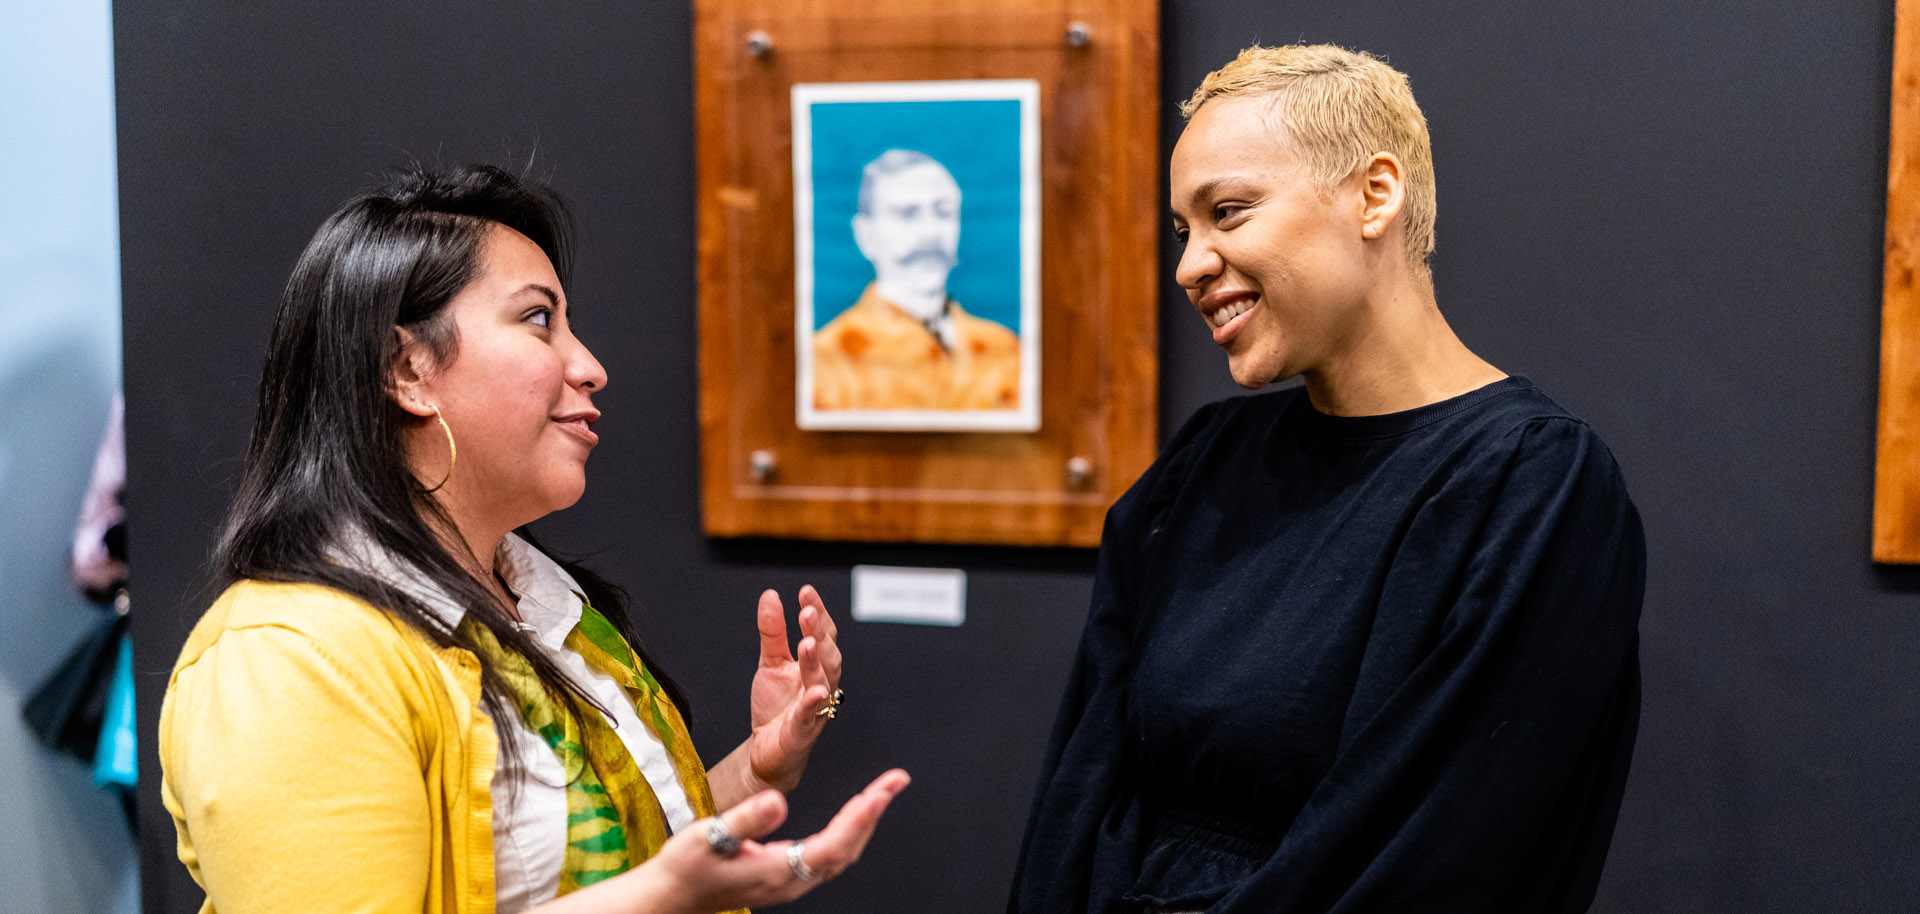 Two people talk at the re-opening of Black Wall Street Gallery in Tulsa's Greenwood District in March 2020.